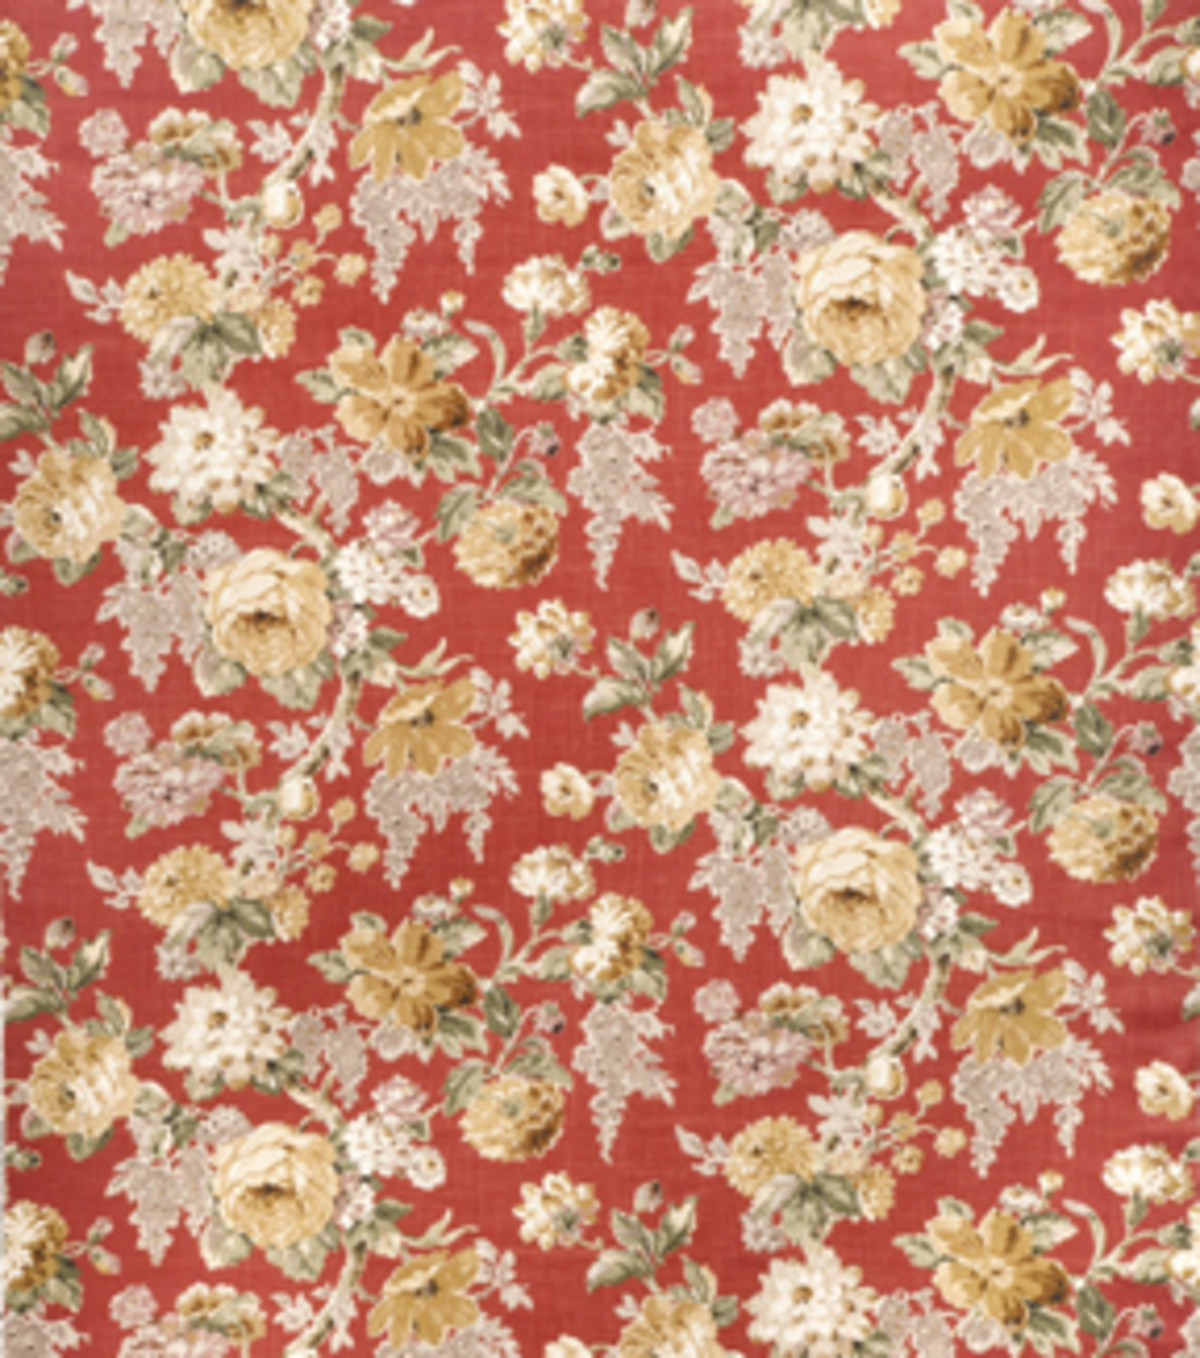 Home Decor 8\u0022x8\u0022 Fabric Swatch-Eaton Square Roosevelt Rouge